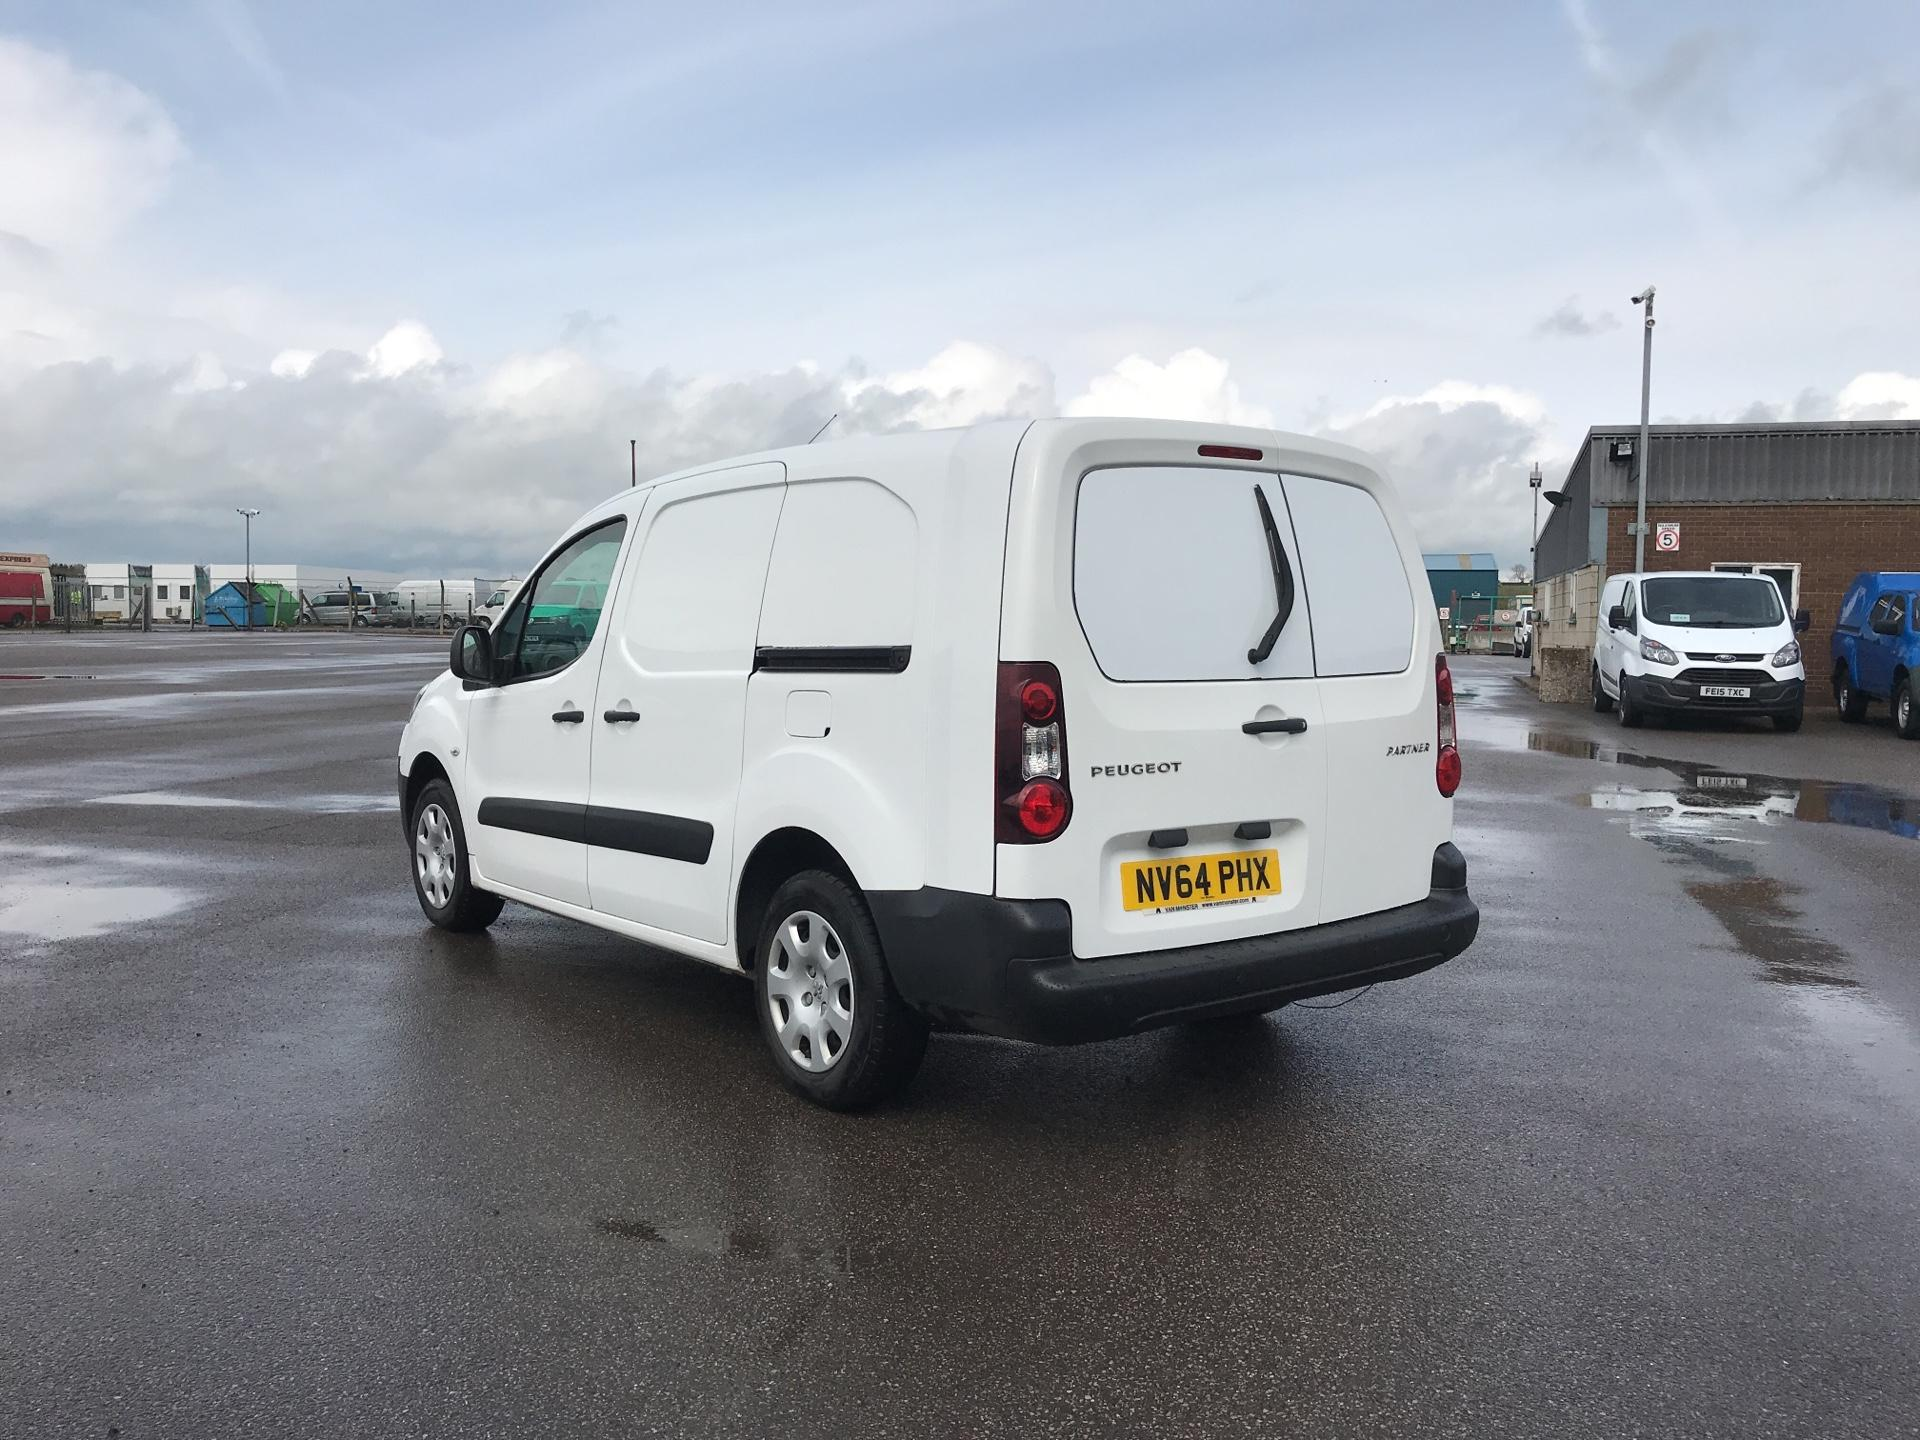 2015 Peugeot Partner L2 716 1.6 92PS CREW VAN EURO 5 (NV64PHX) Thumbnail 5